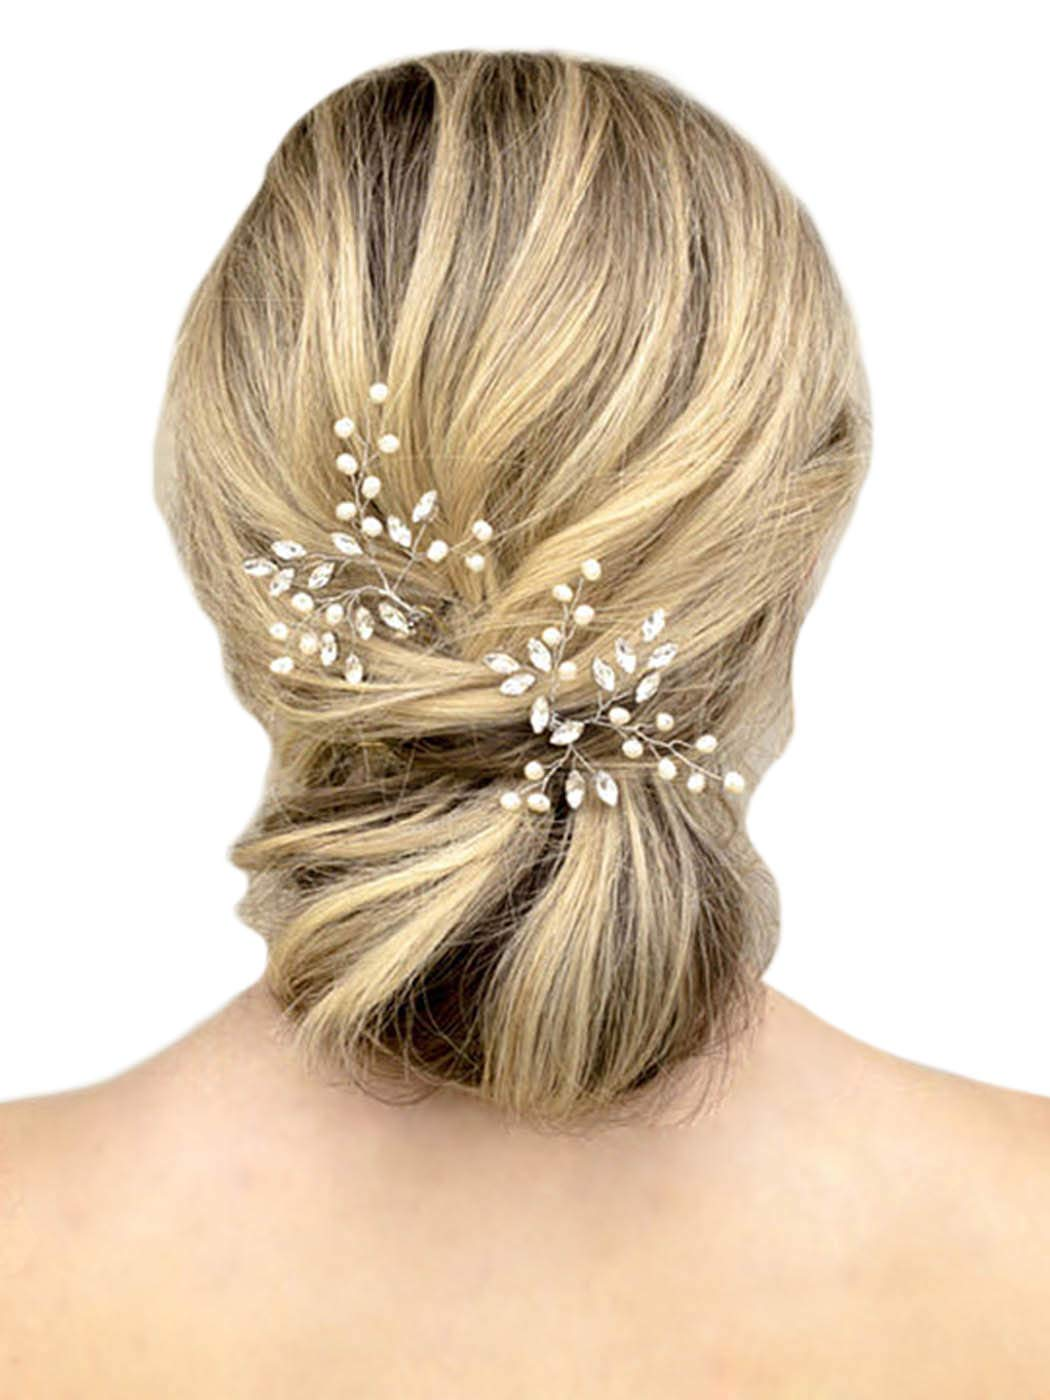 Gold bridal veil hair accessory silver 3 inch set of 6 DIY wire hair pins craft supply